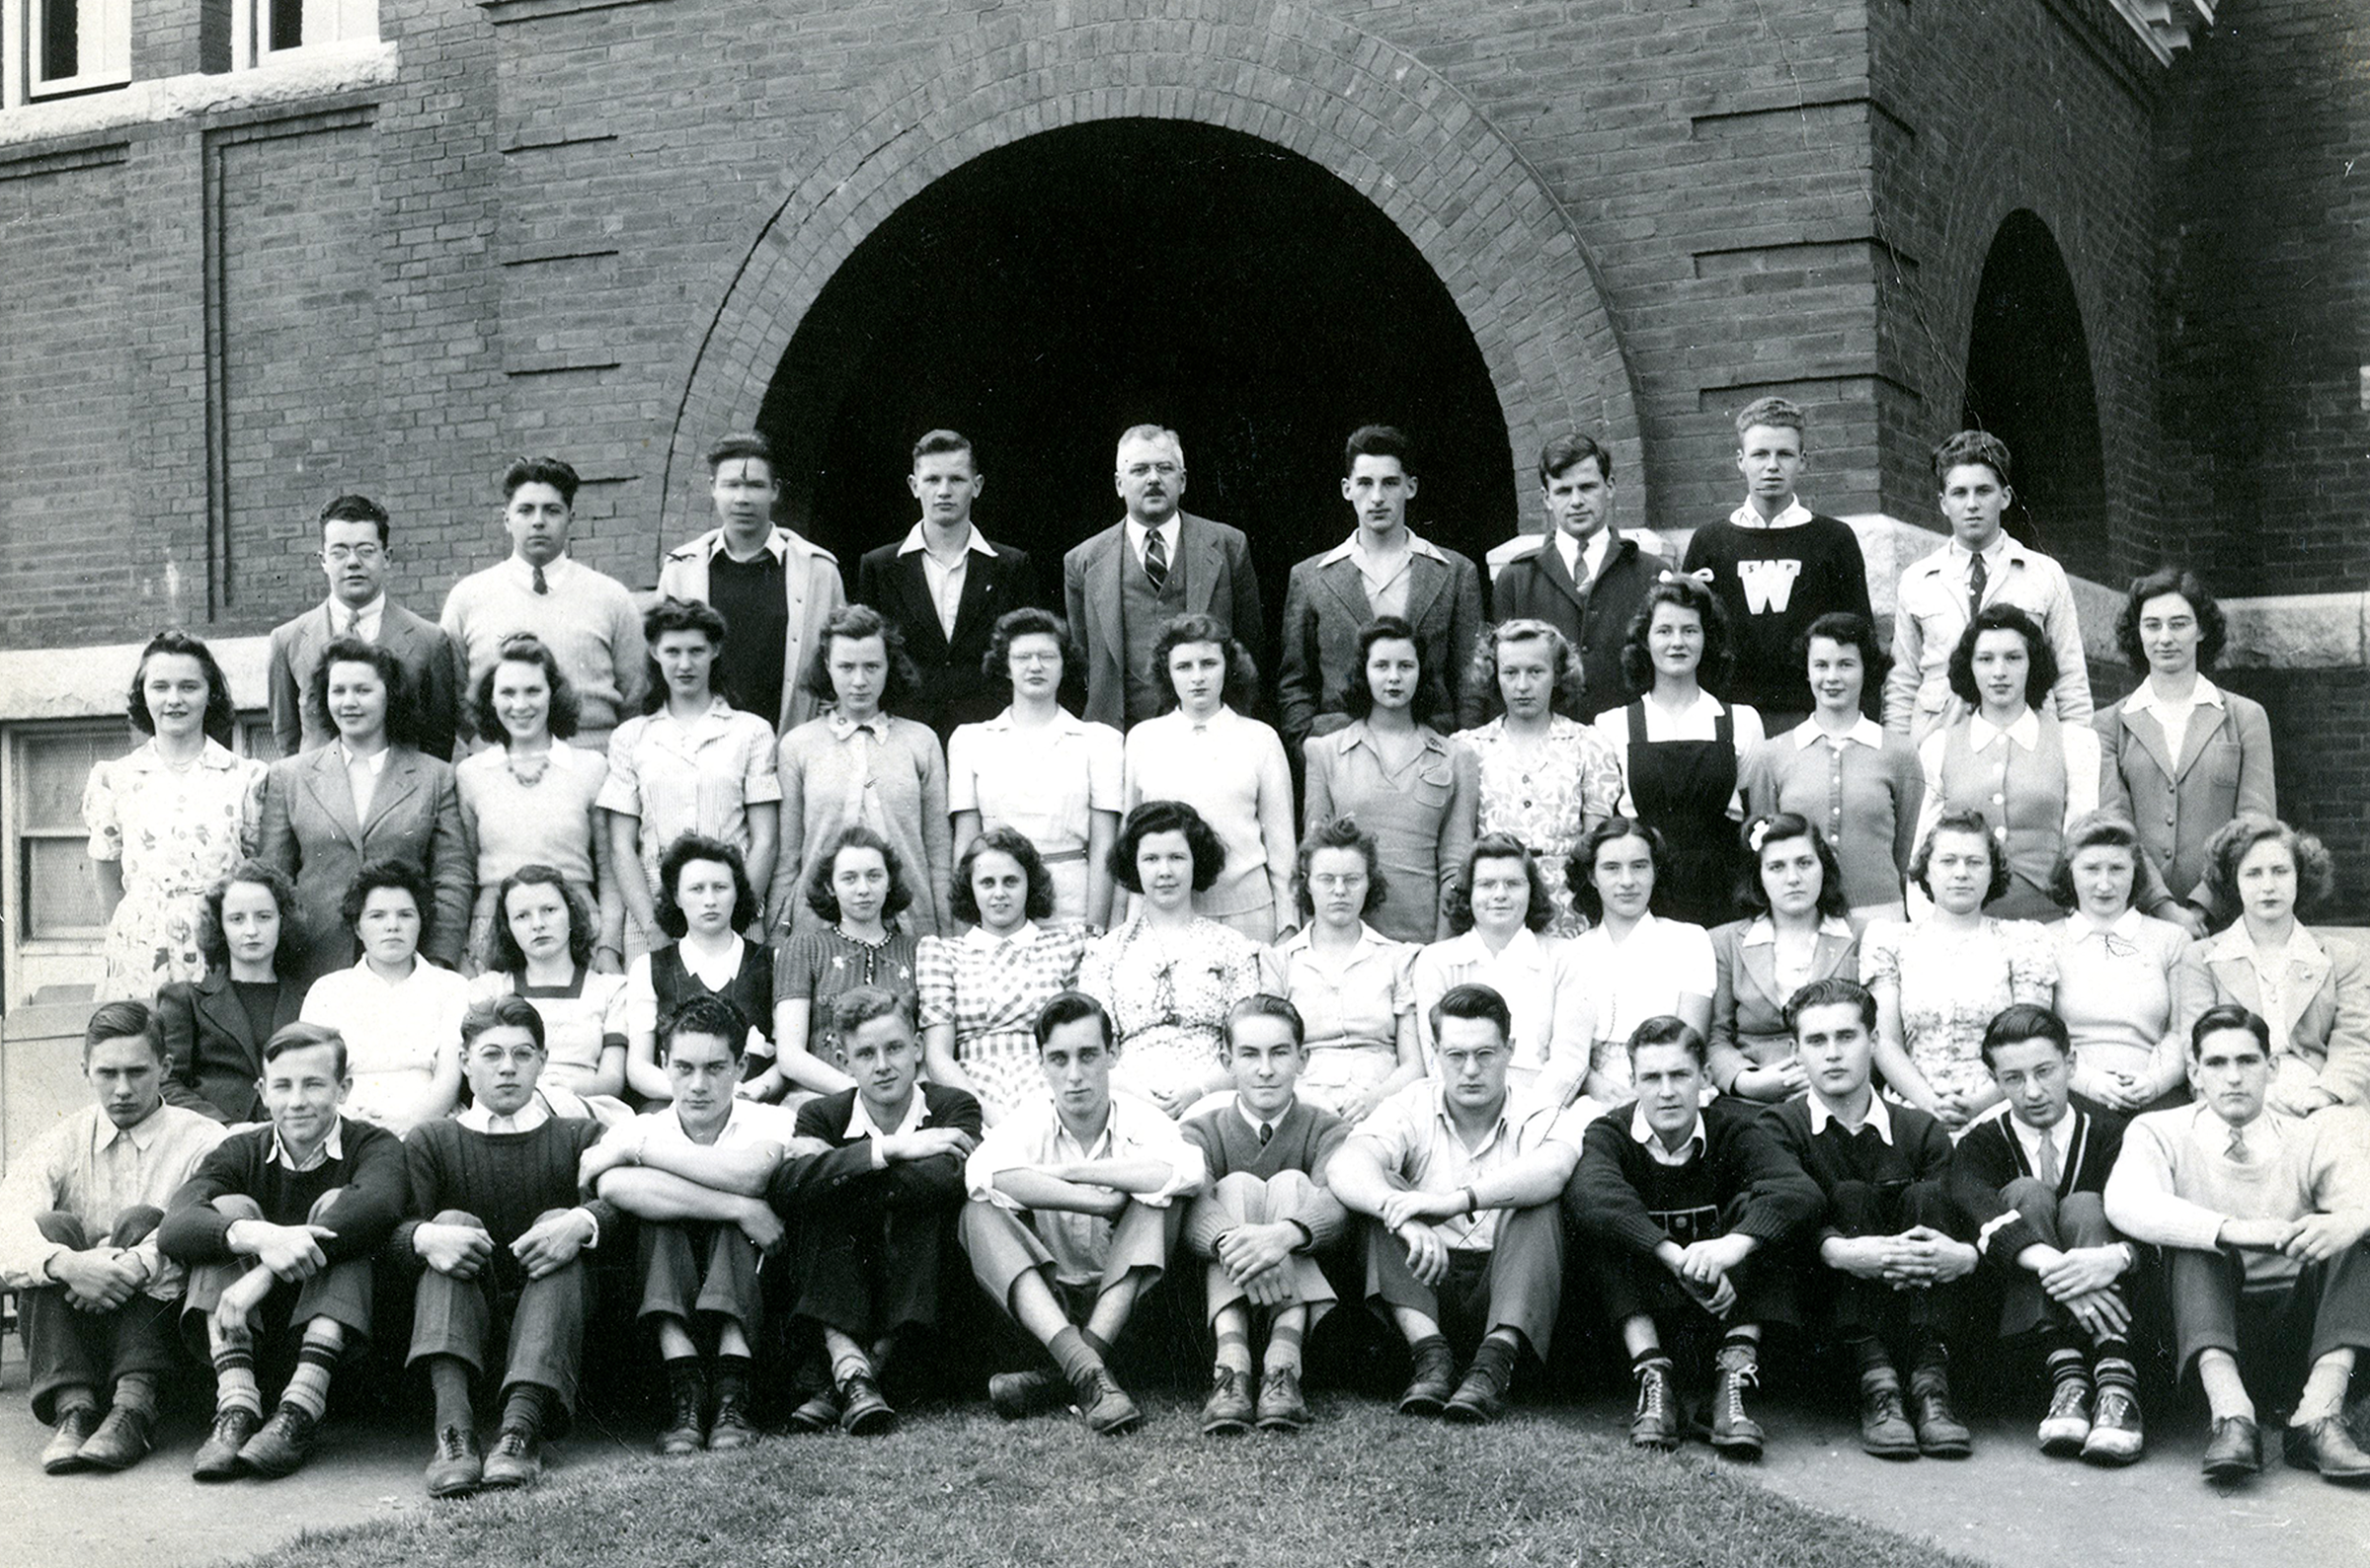 The class of 1943. Paul is in the front row, first from the right.